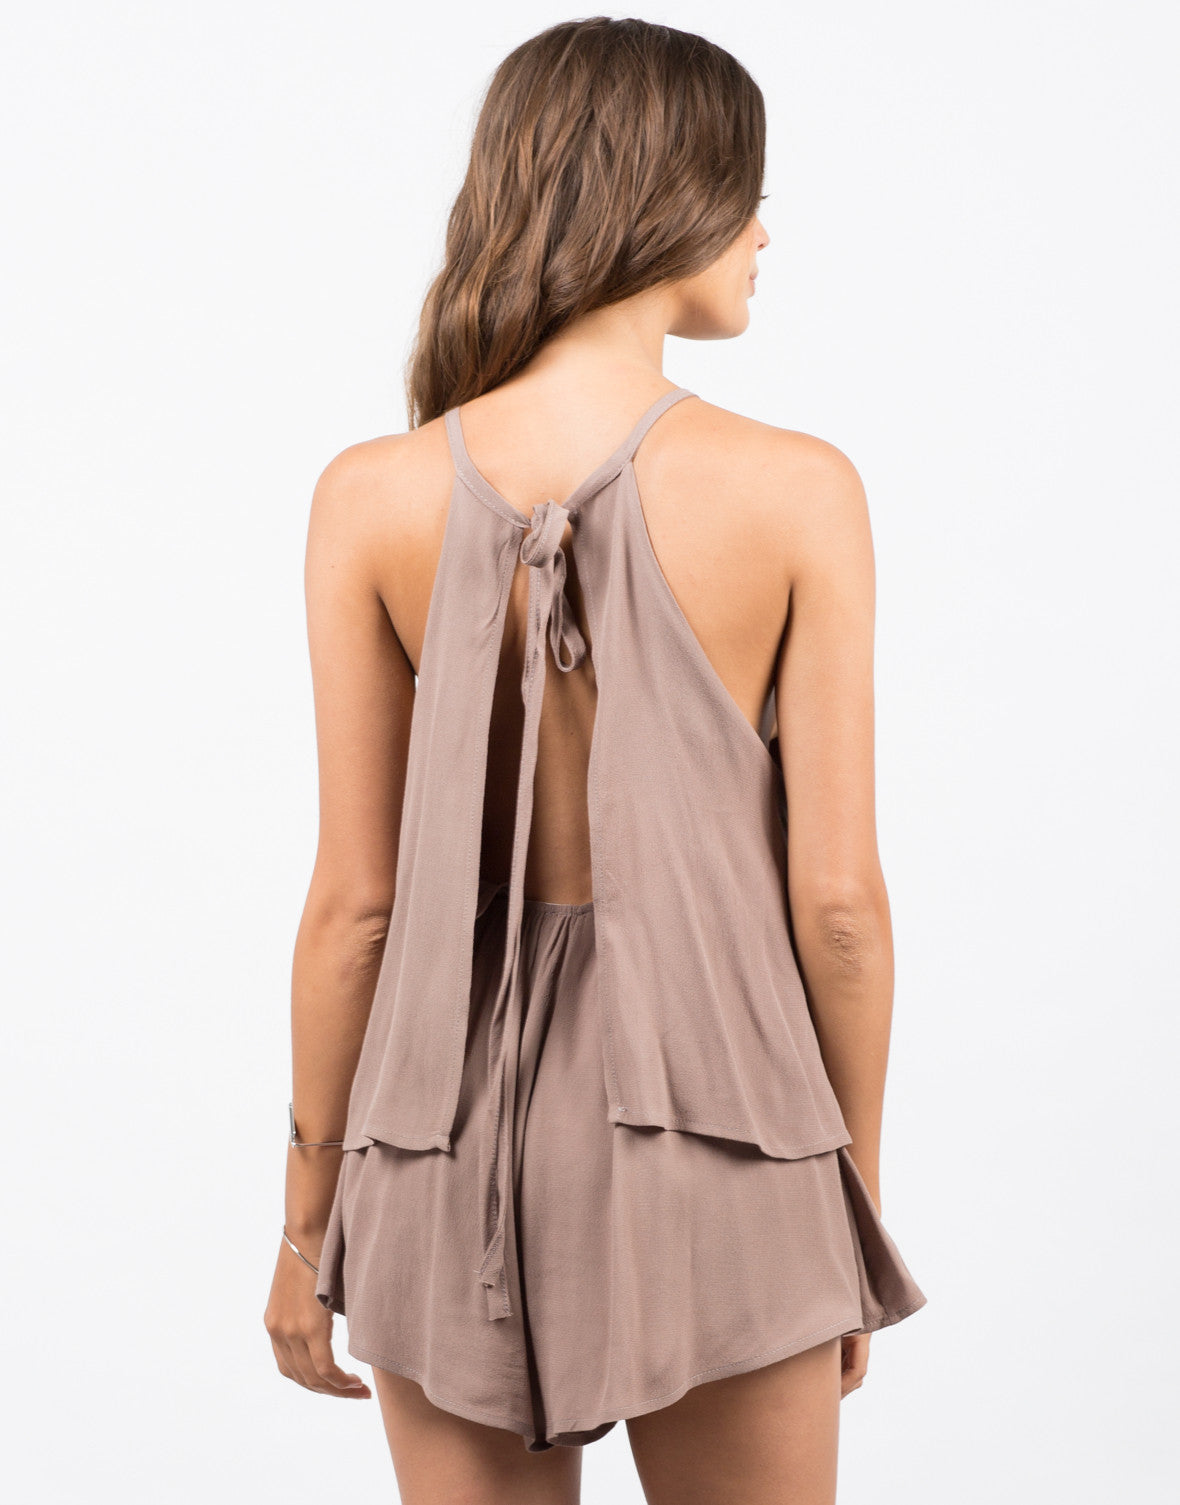 Back View of High Neck Tiered Romper